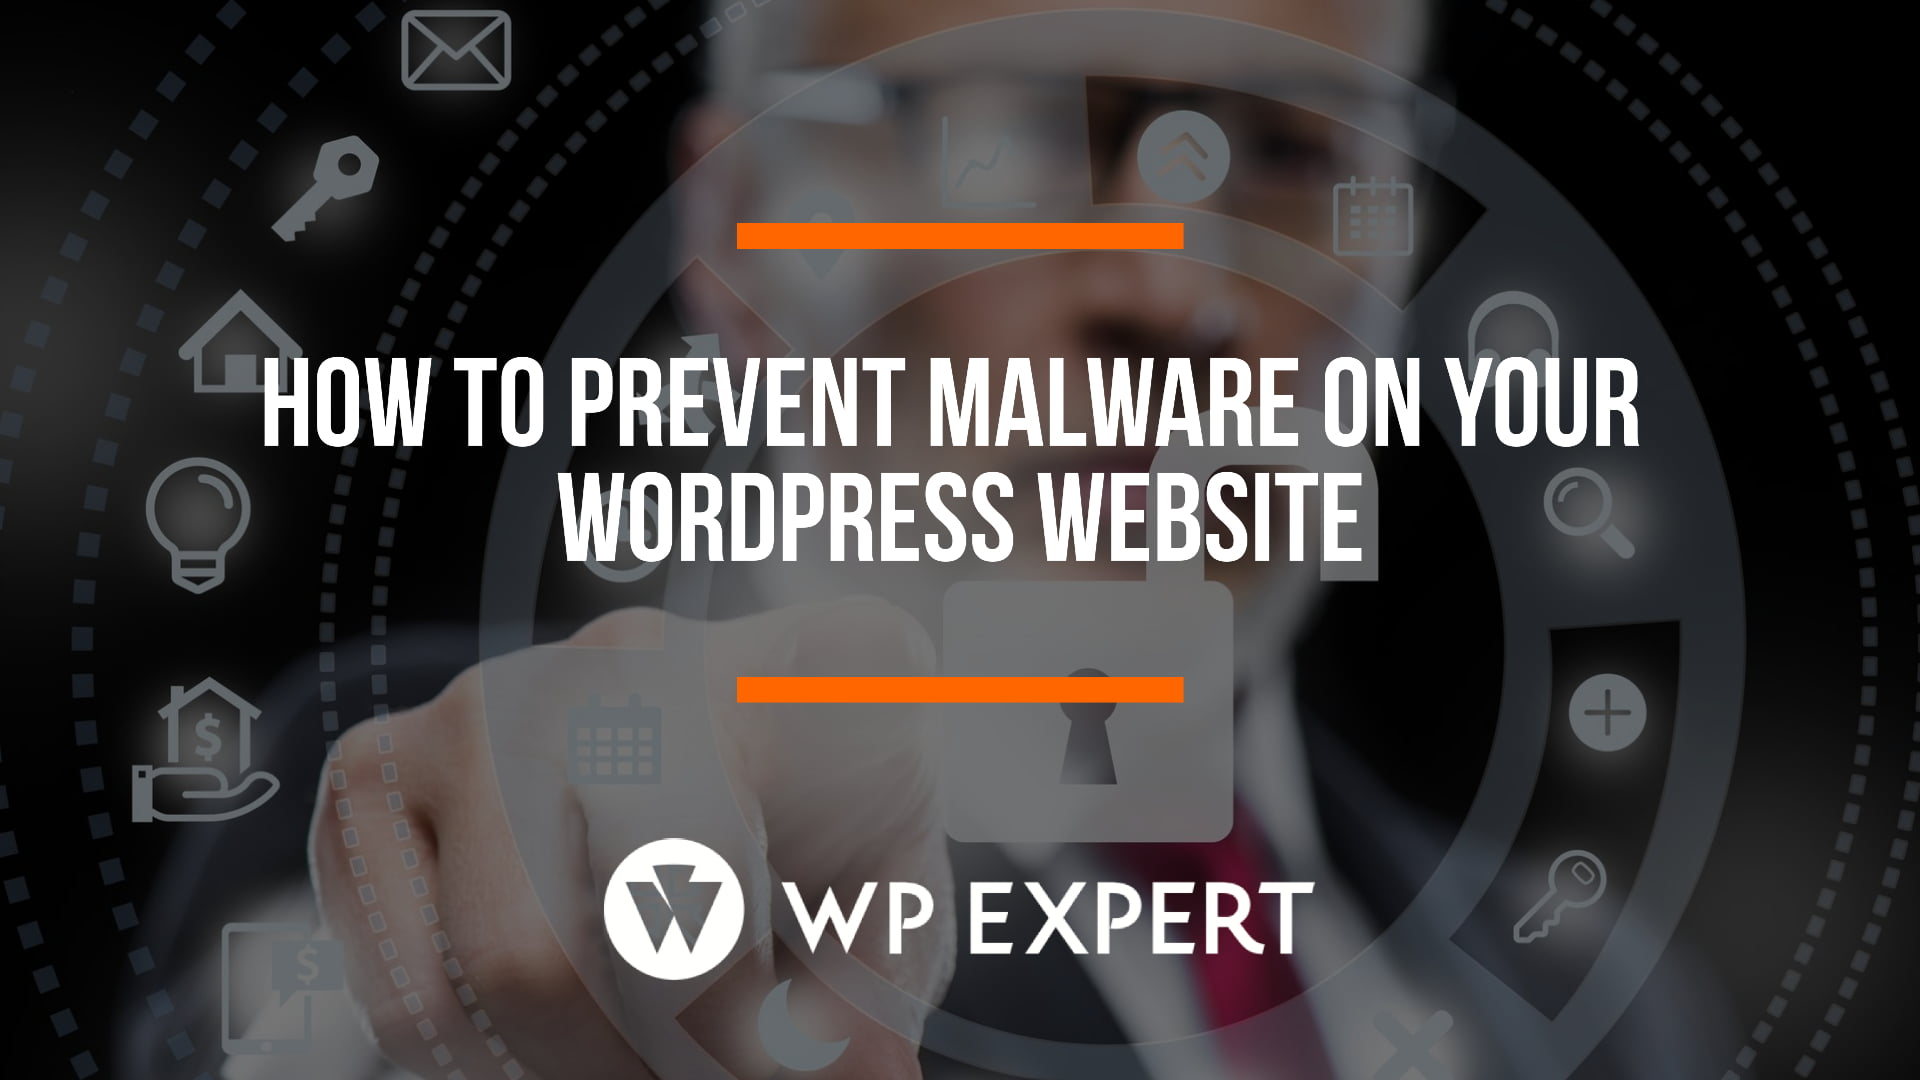 How to Prevent Malware on Your WordPress Website